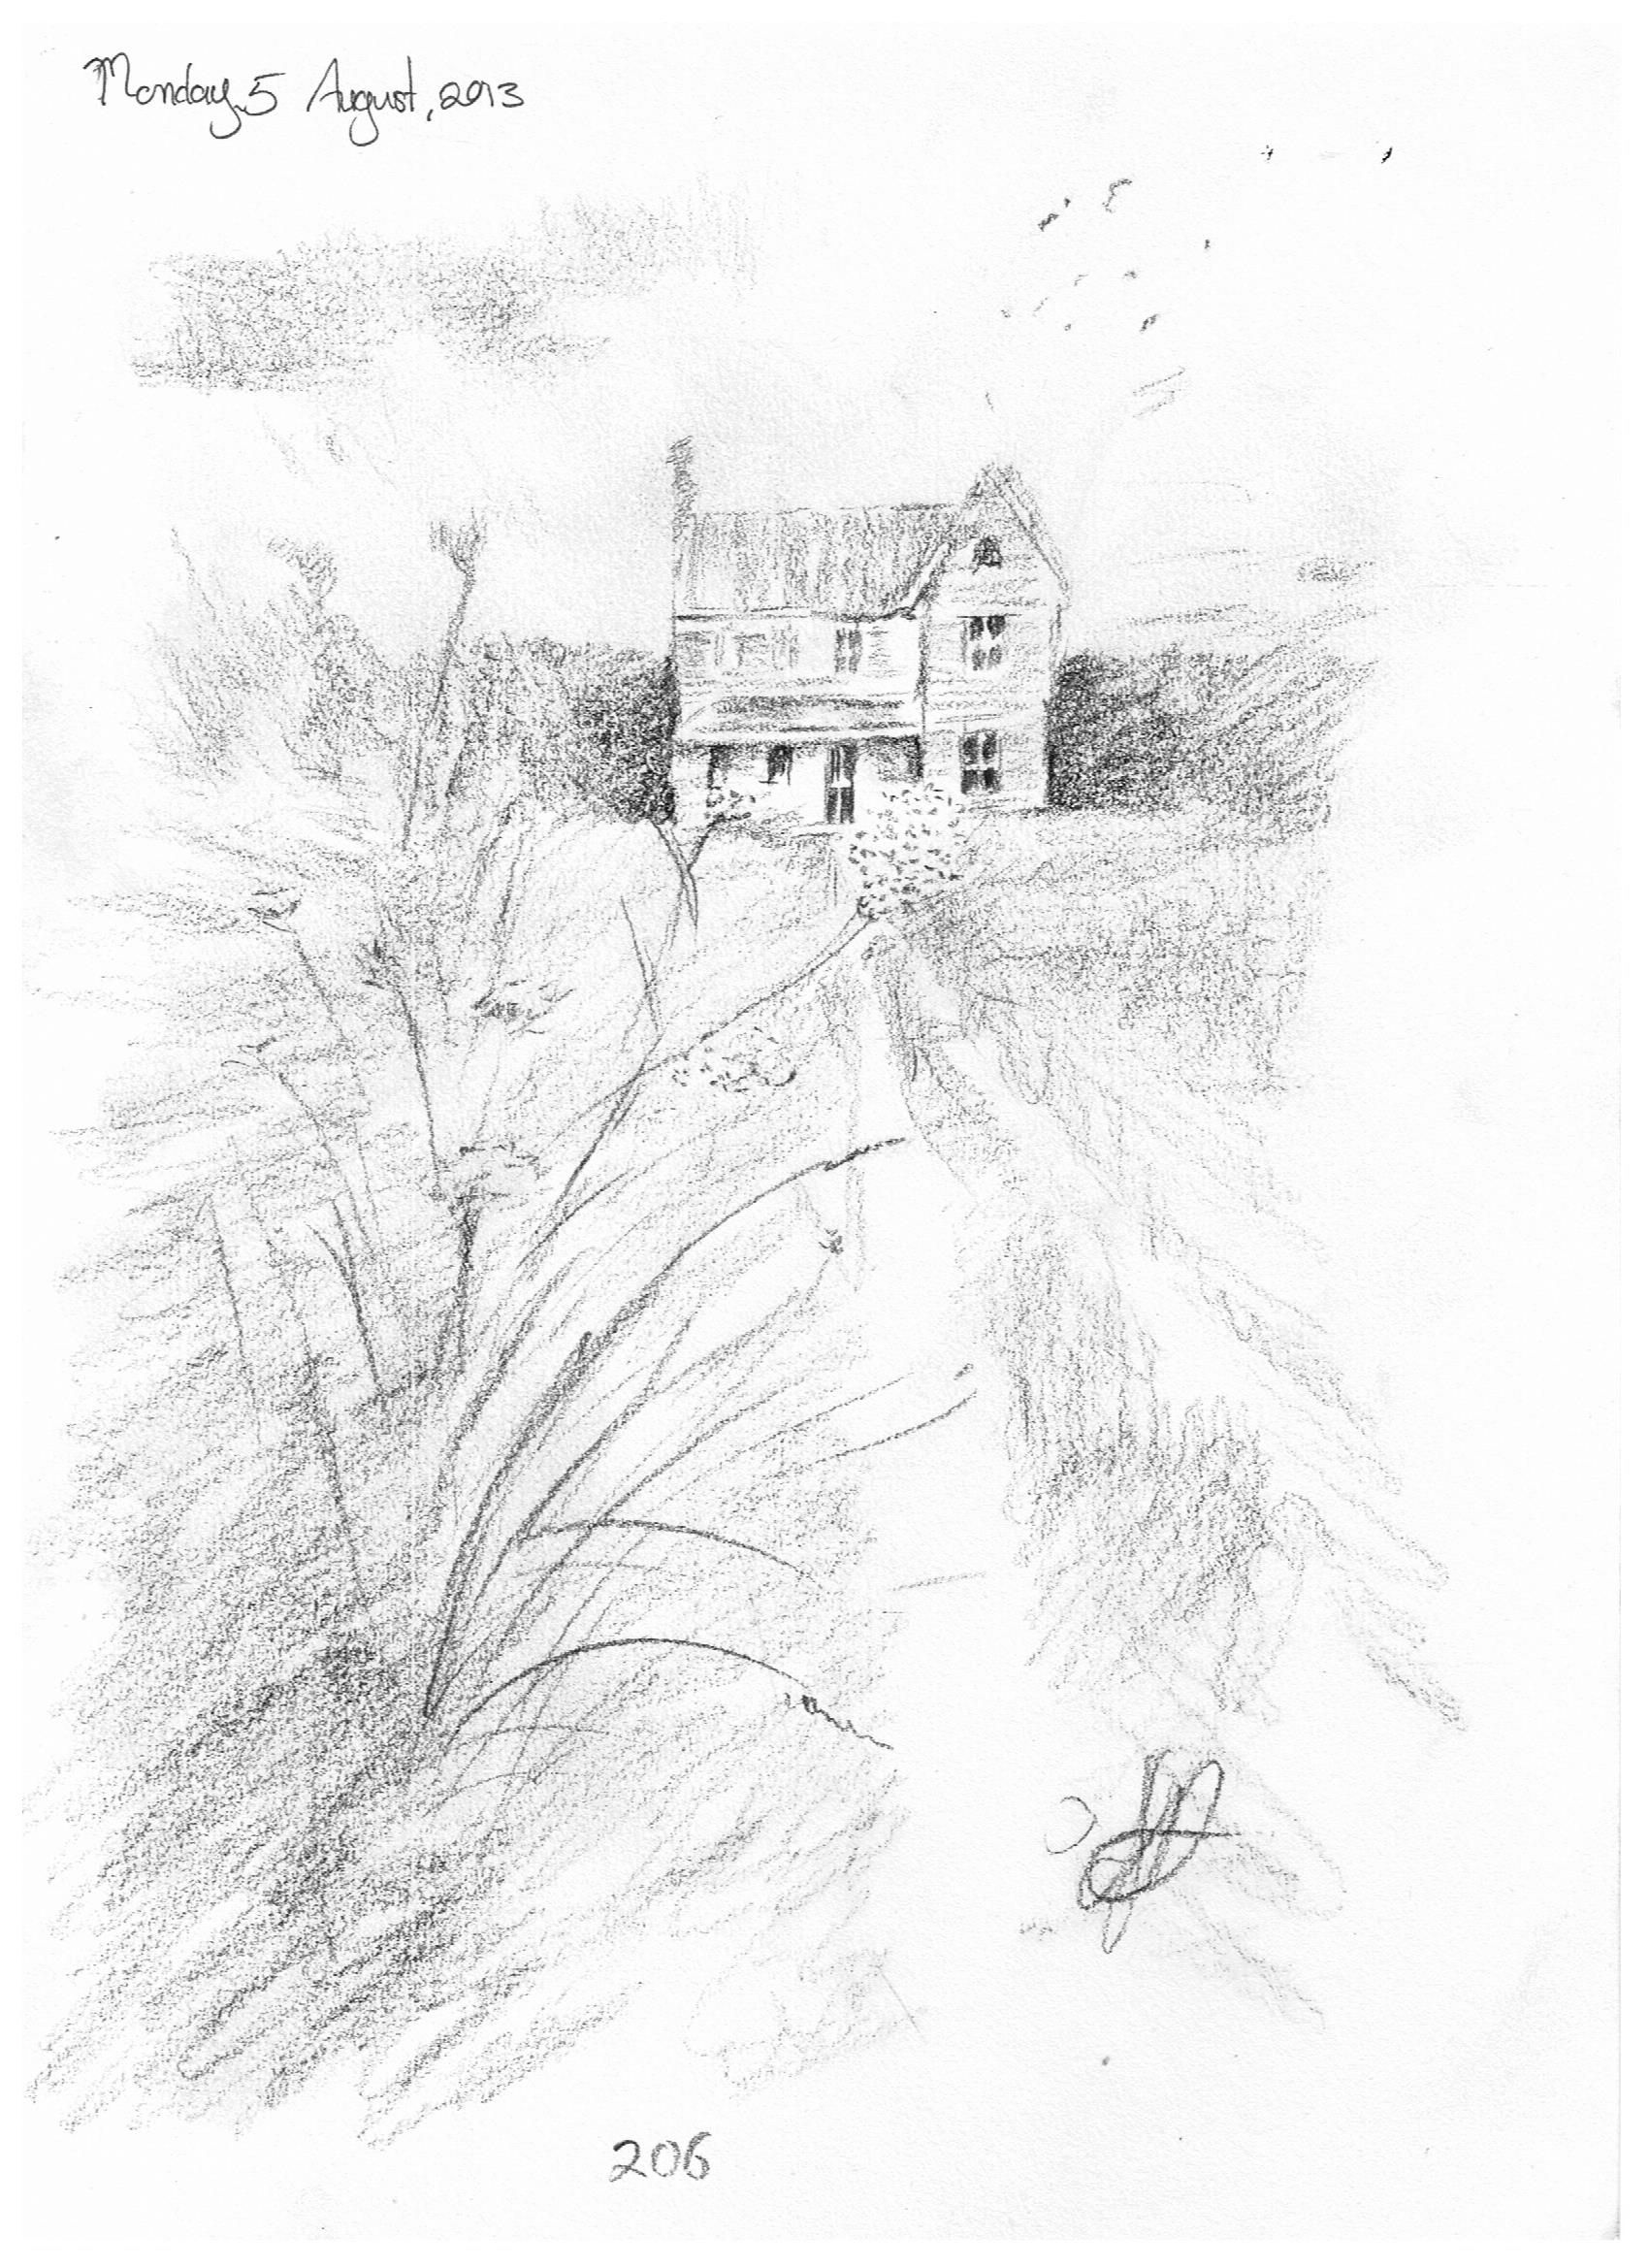 206 old abandoned house charcoal pencil sketch